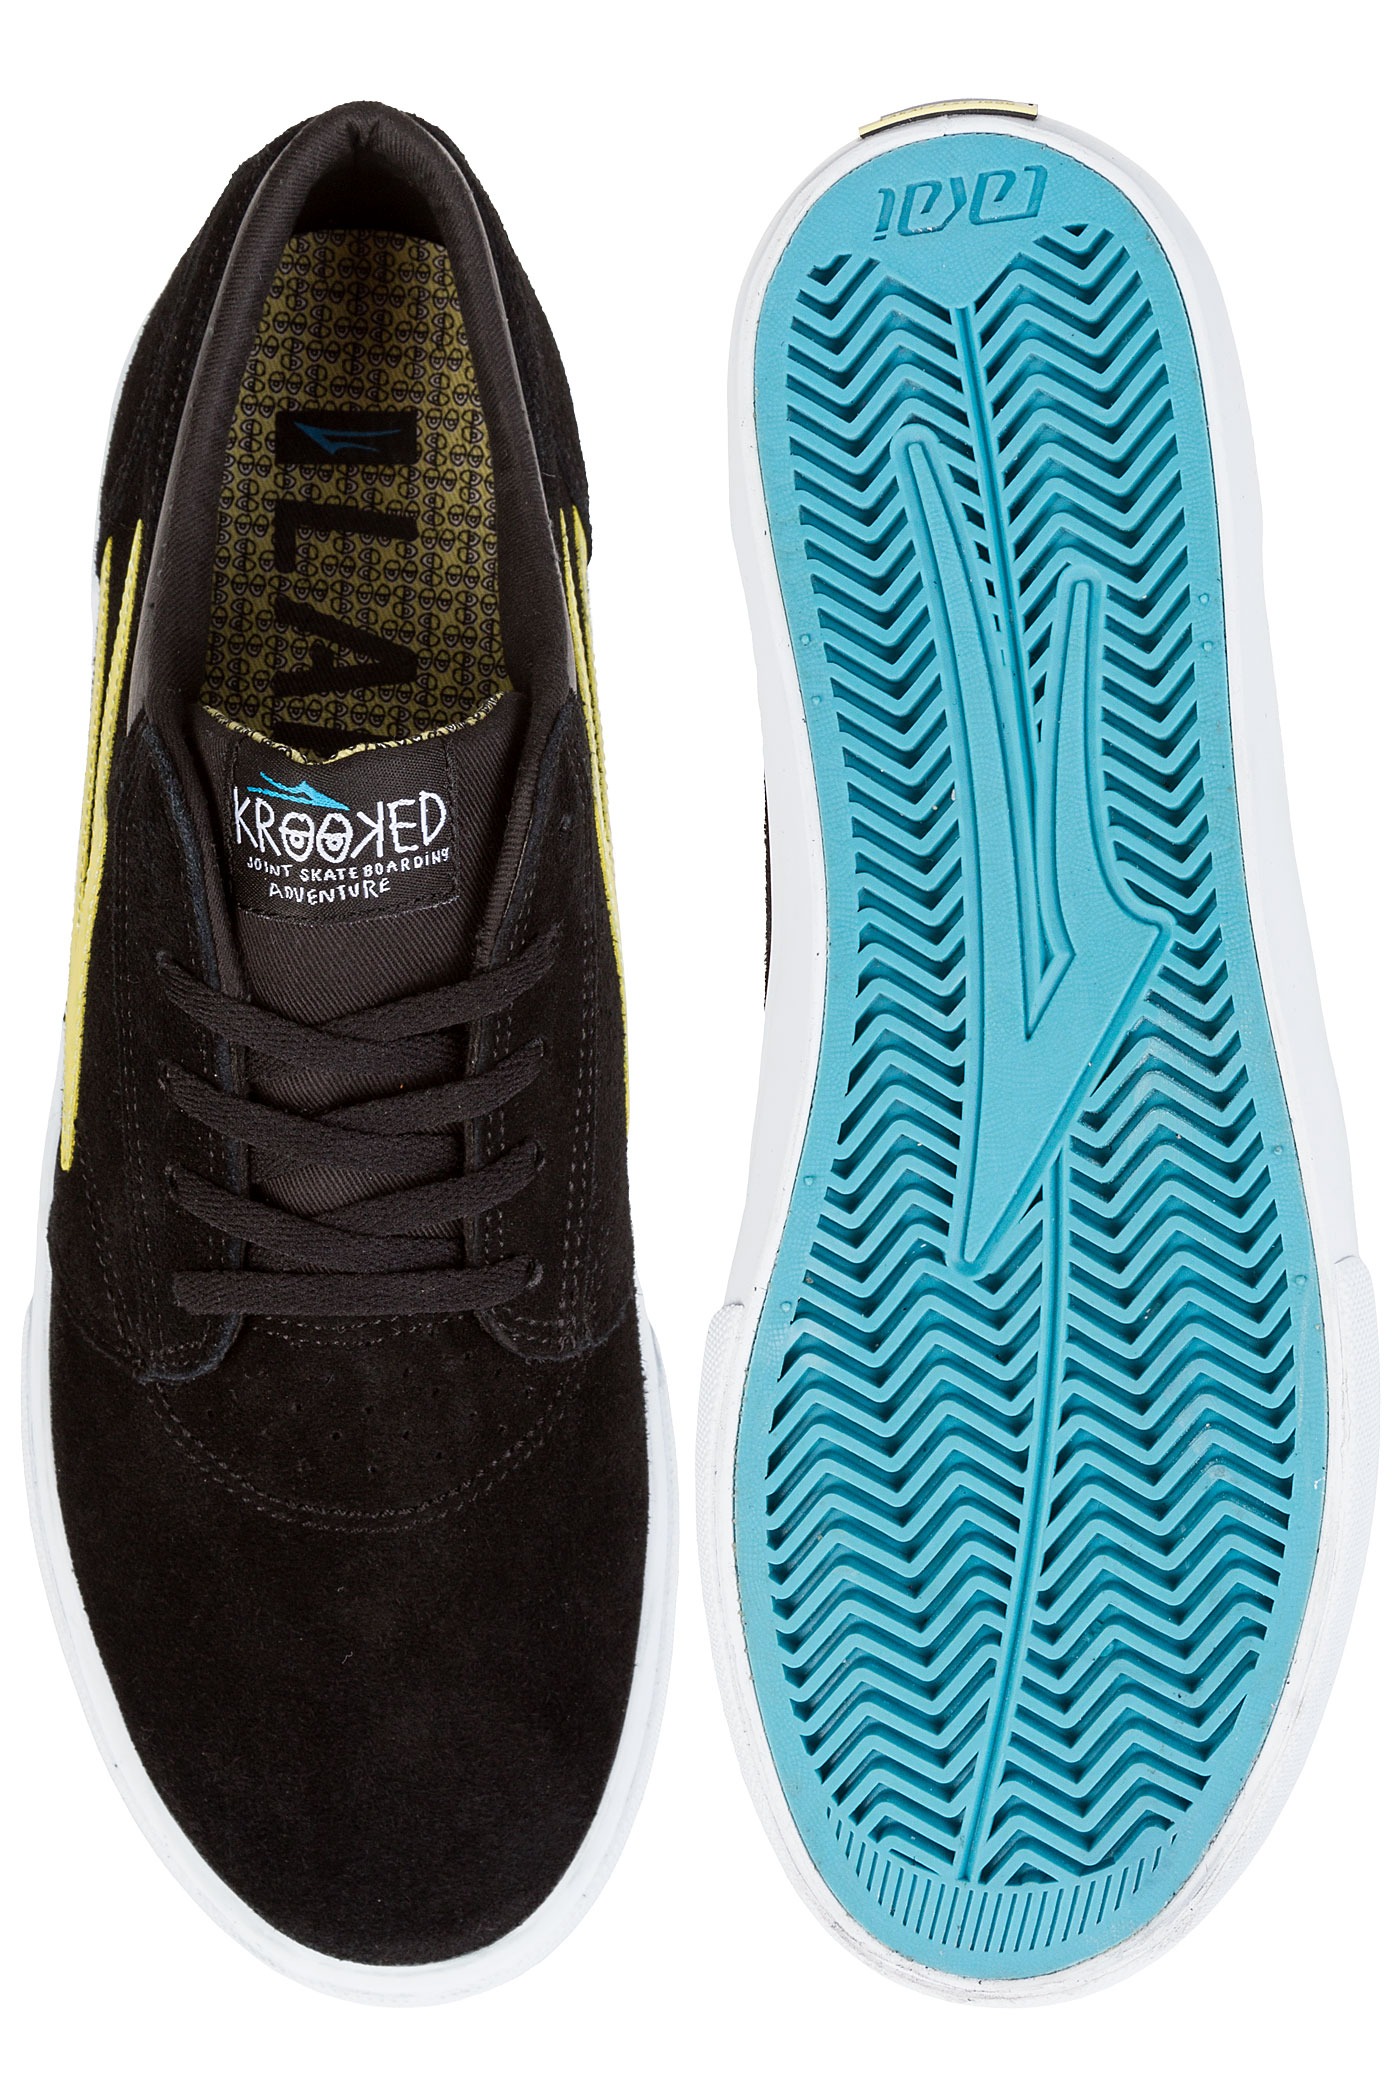 on sale 1ef99 a9d6d ... Lakai x Krooked Griffin Suede Chaussure (black yellow) ...